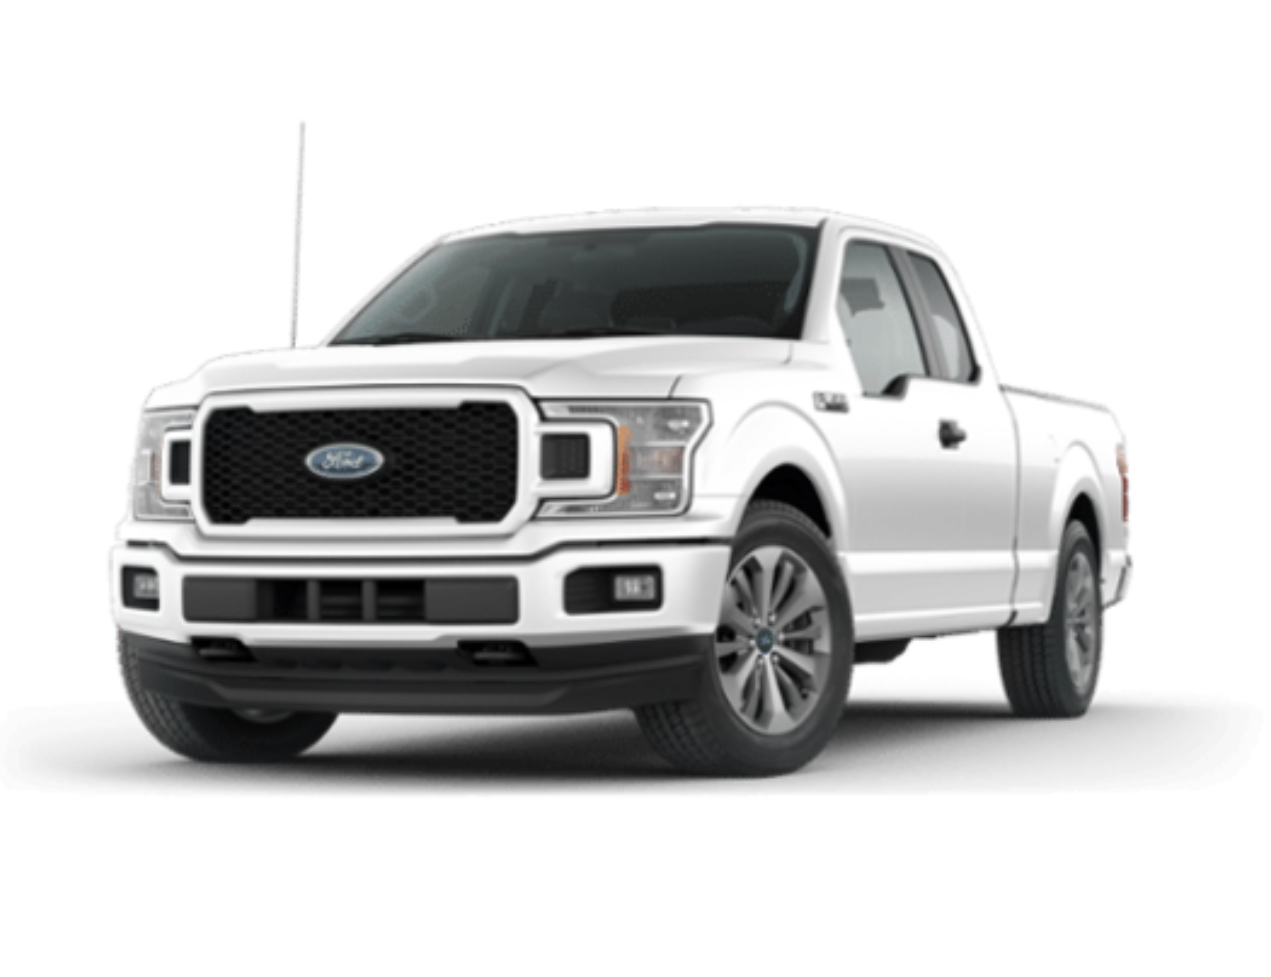 Bob Davidson Ford - Certified Pre-Owned Inventory